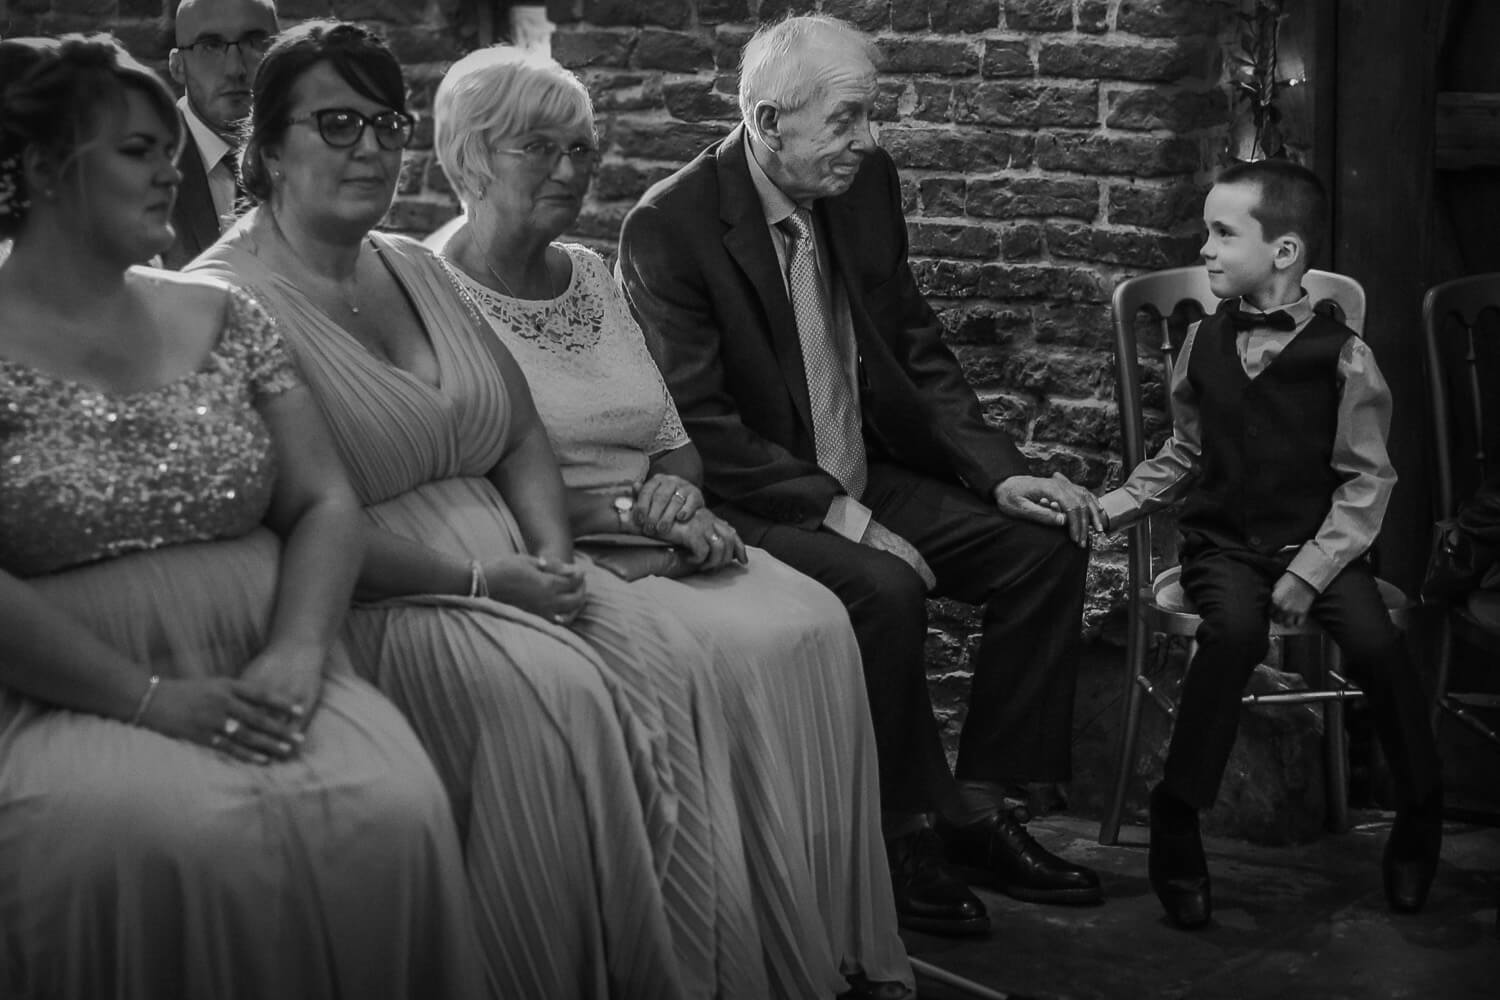 Little boy holding granddads hand during wedding ceremony. What is documentary wedding photography